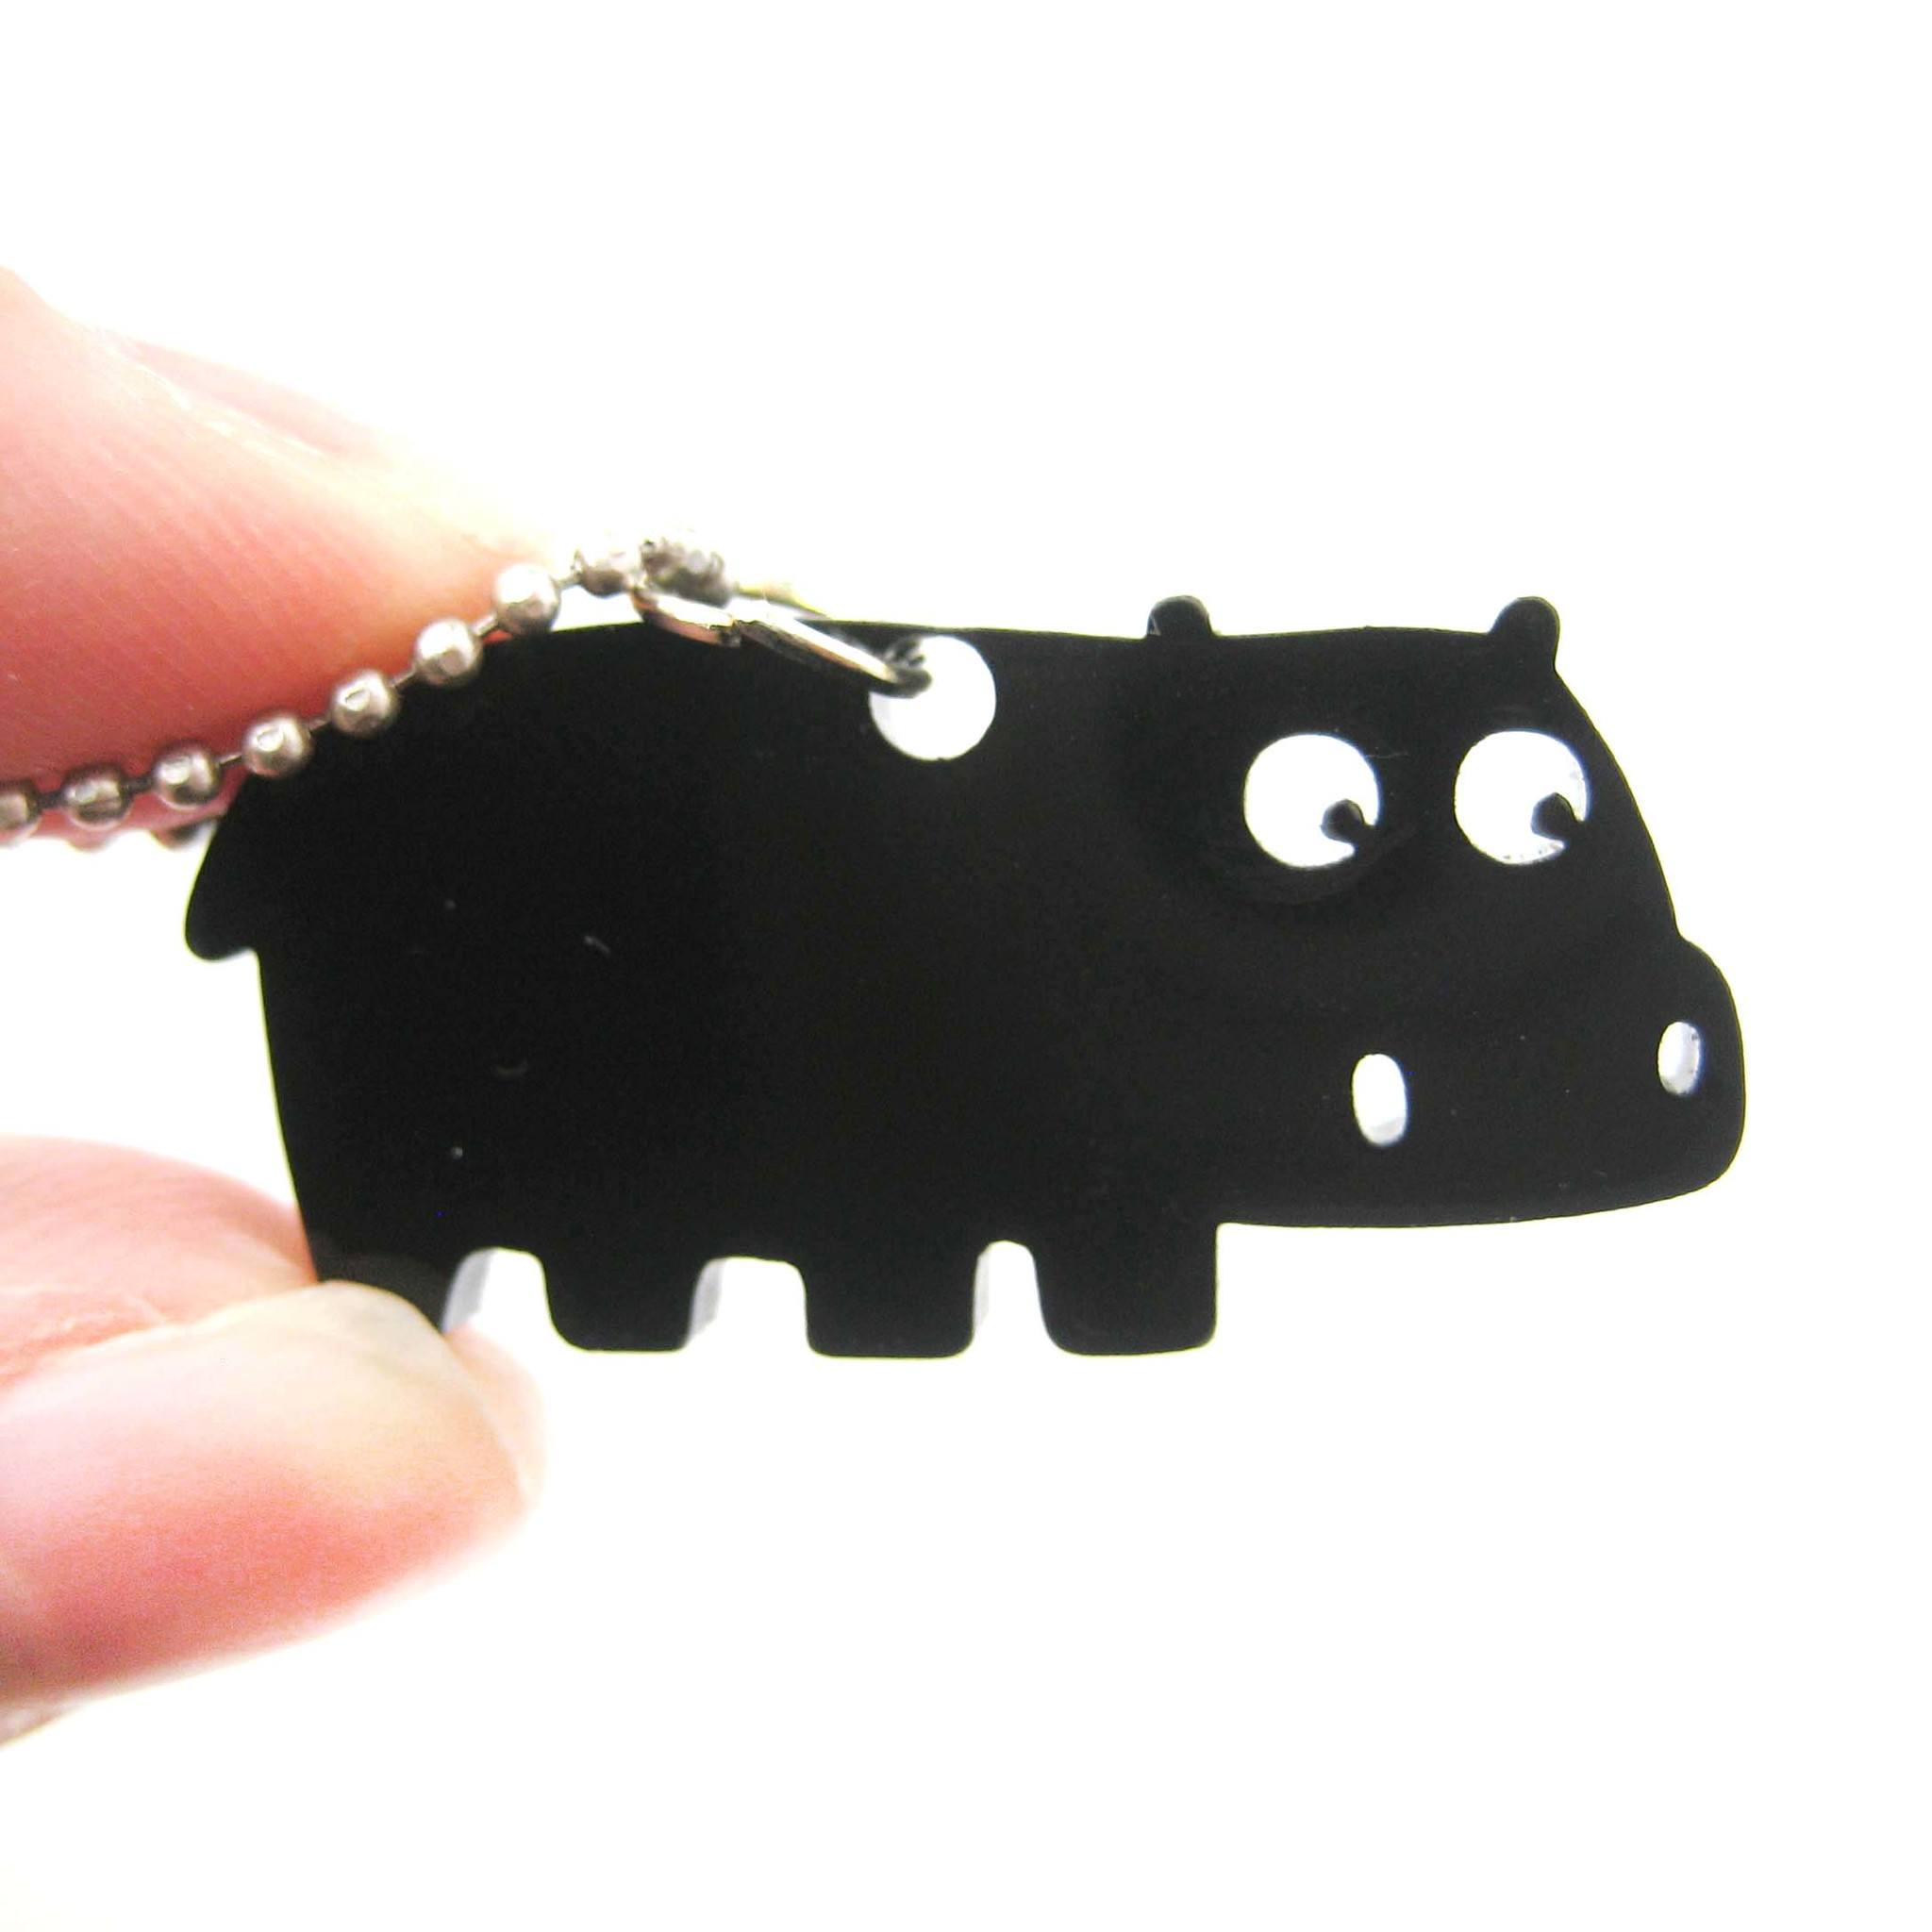 hippo-silhouette-shaped-pendant-necklace-in-black-acrylic-animal-jewelryhippo-silhouette-shaped-pendant-necklace-in-black-acrylic-animal-jewelry